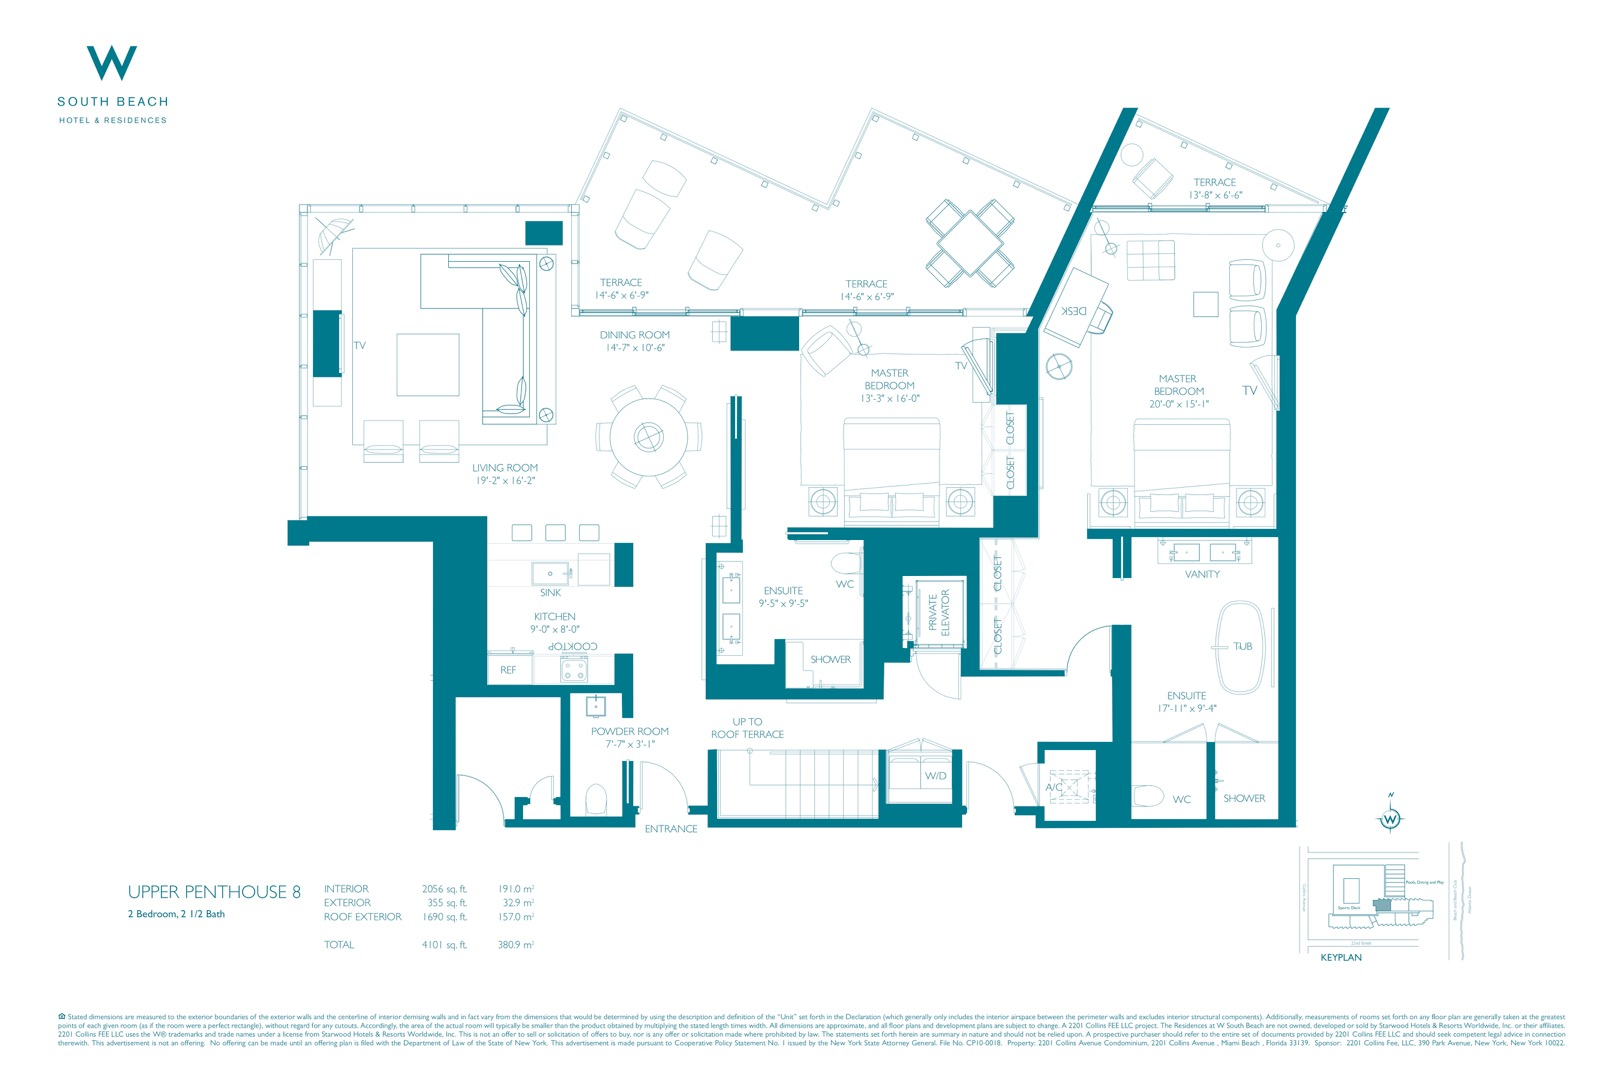 Floor plan image W South Beach Penthouse 8 - 2/2/1  - 5467 sqft image